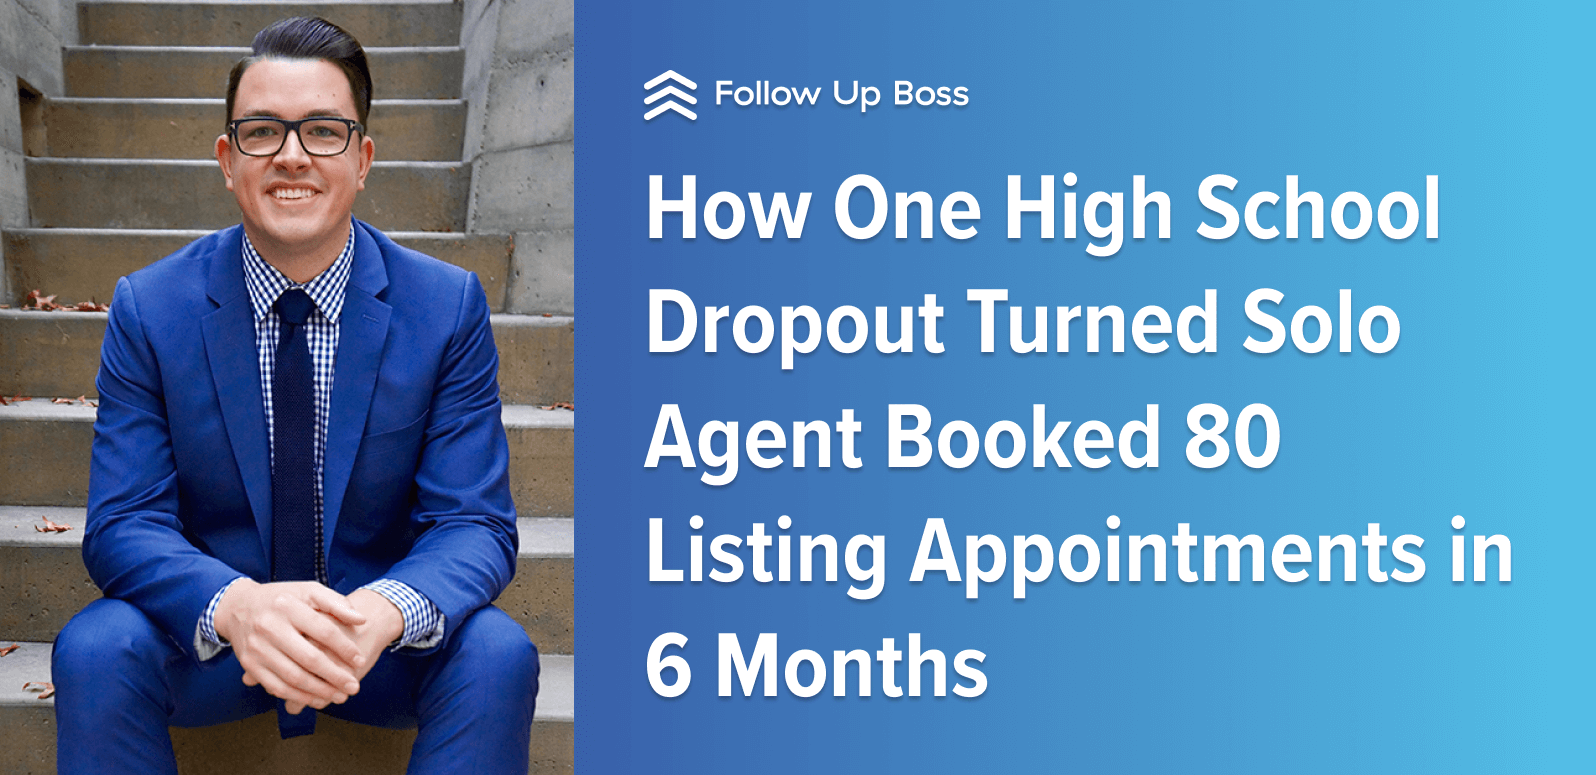 How One High School Dropout Turned Solo Agent Booked 80 Listing Appointments in 6 Months